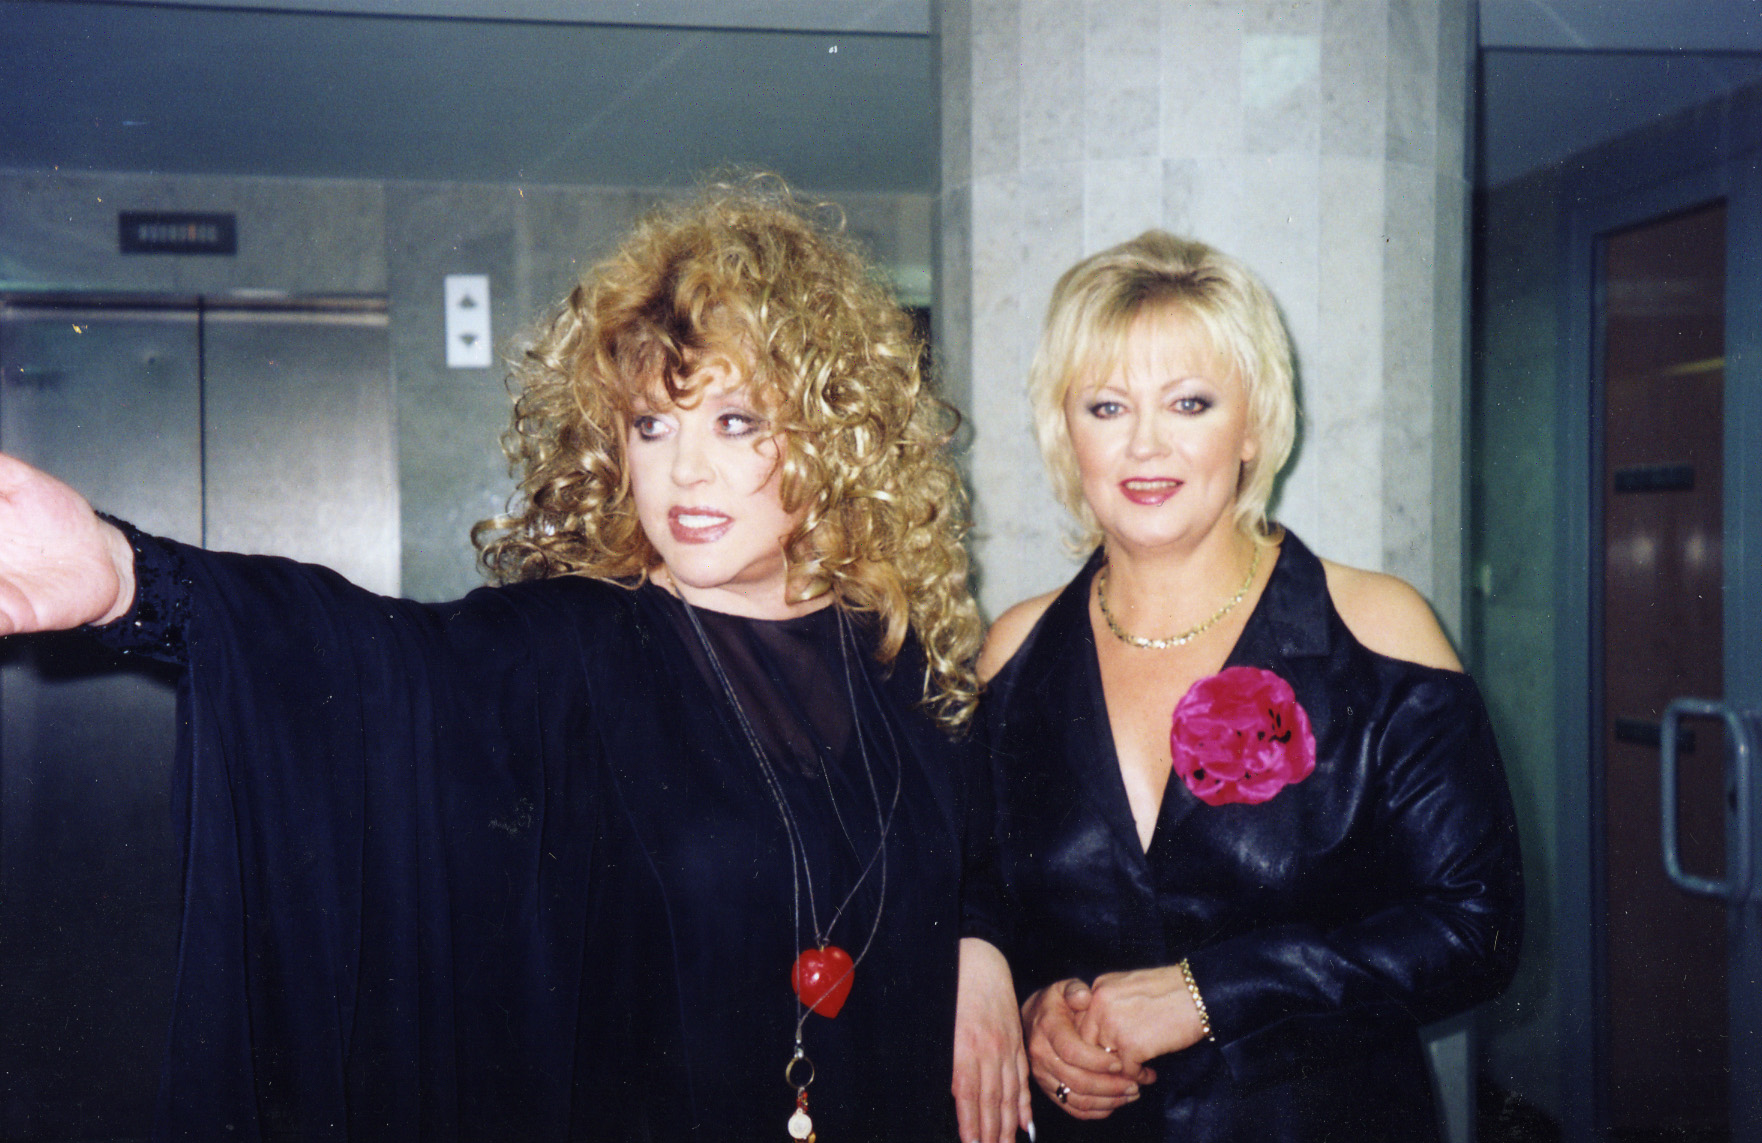 Alla Pugacheva charmed in the image of youth 06/16/2018 6